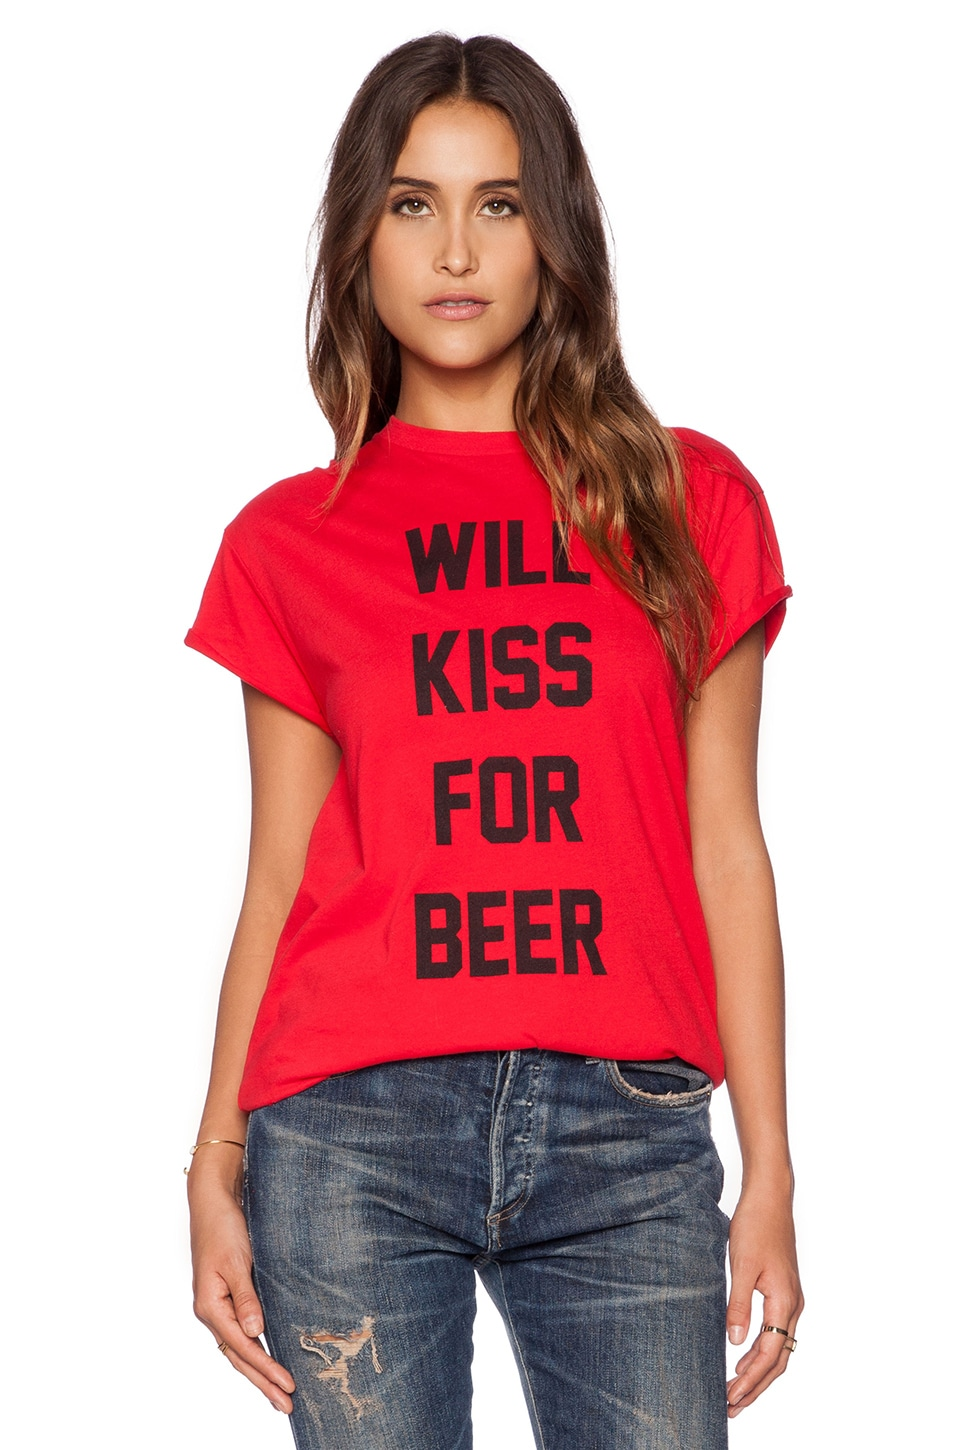 The Laundry Room Will Kiss for Beer Rolling Tee in Red Hot